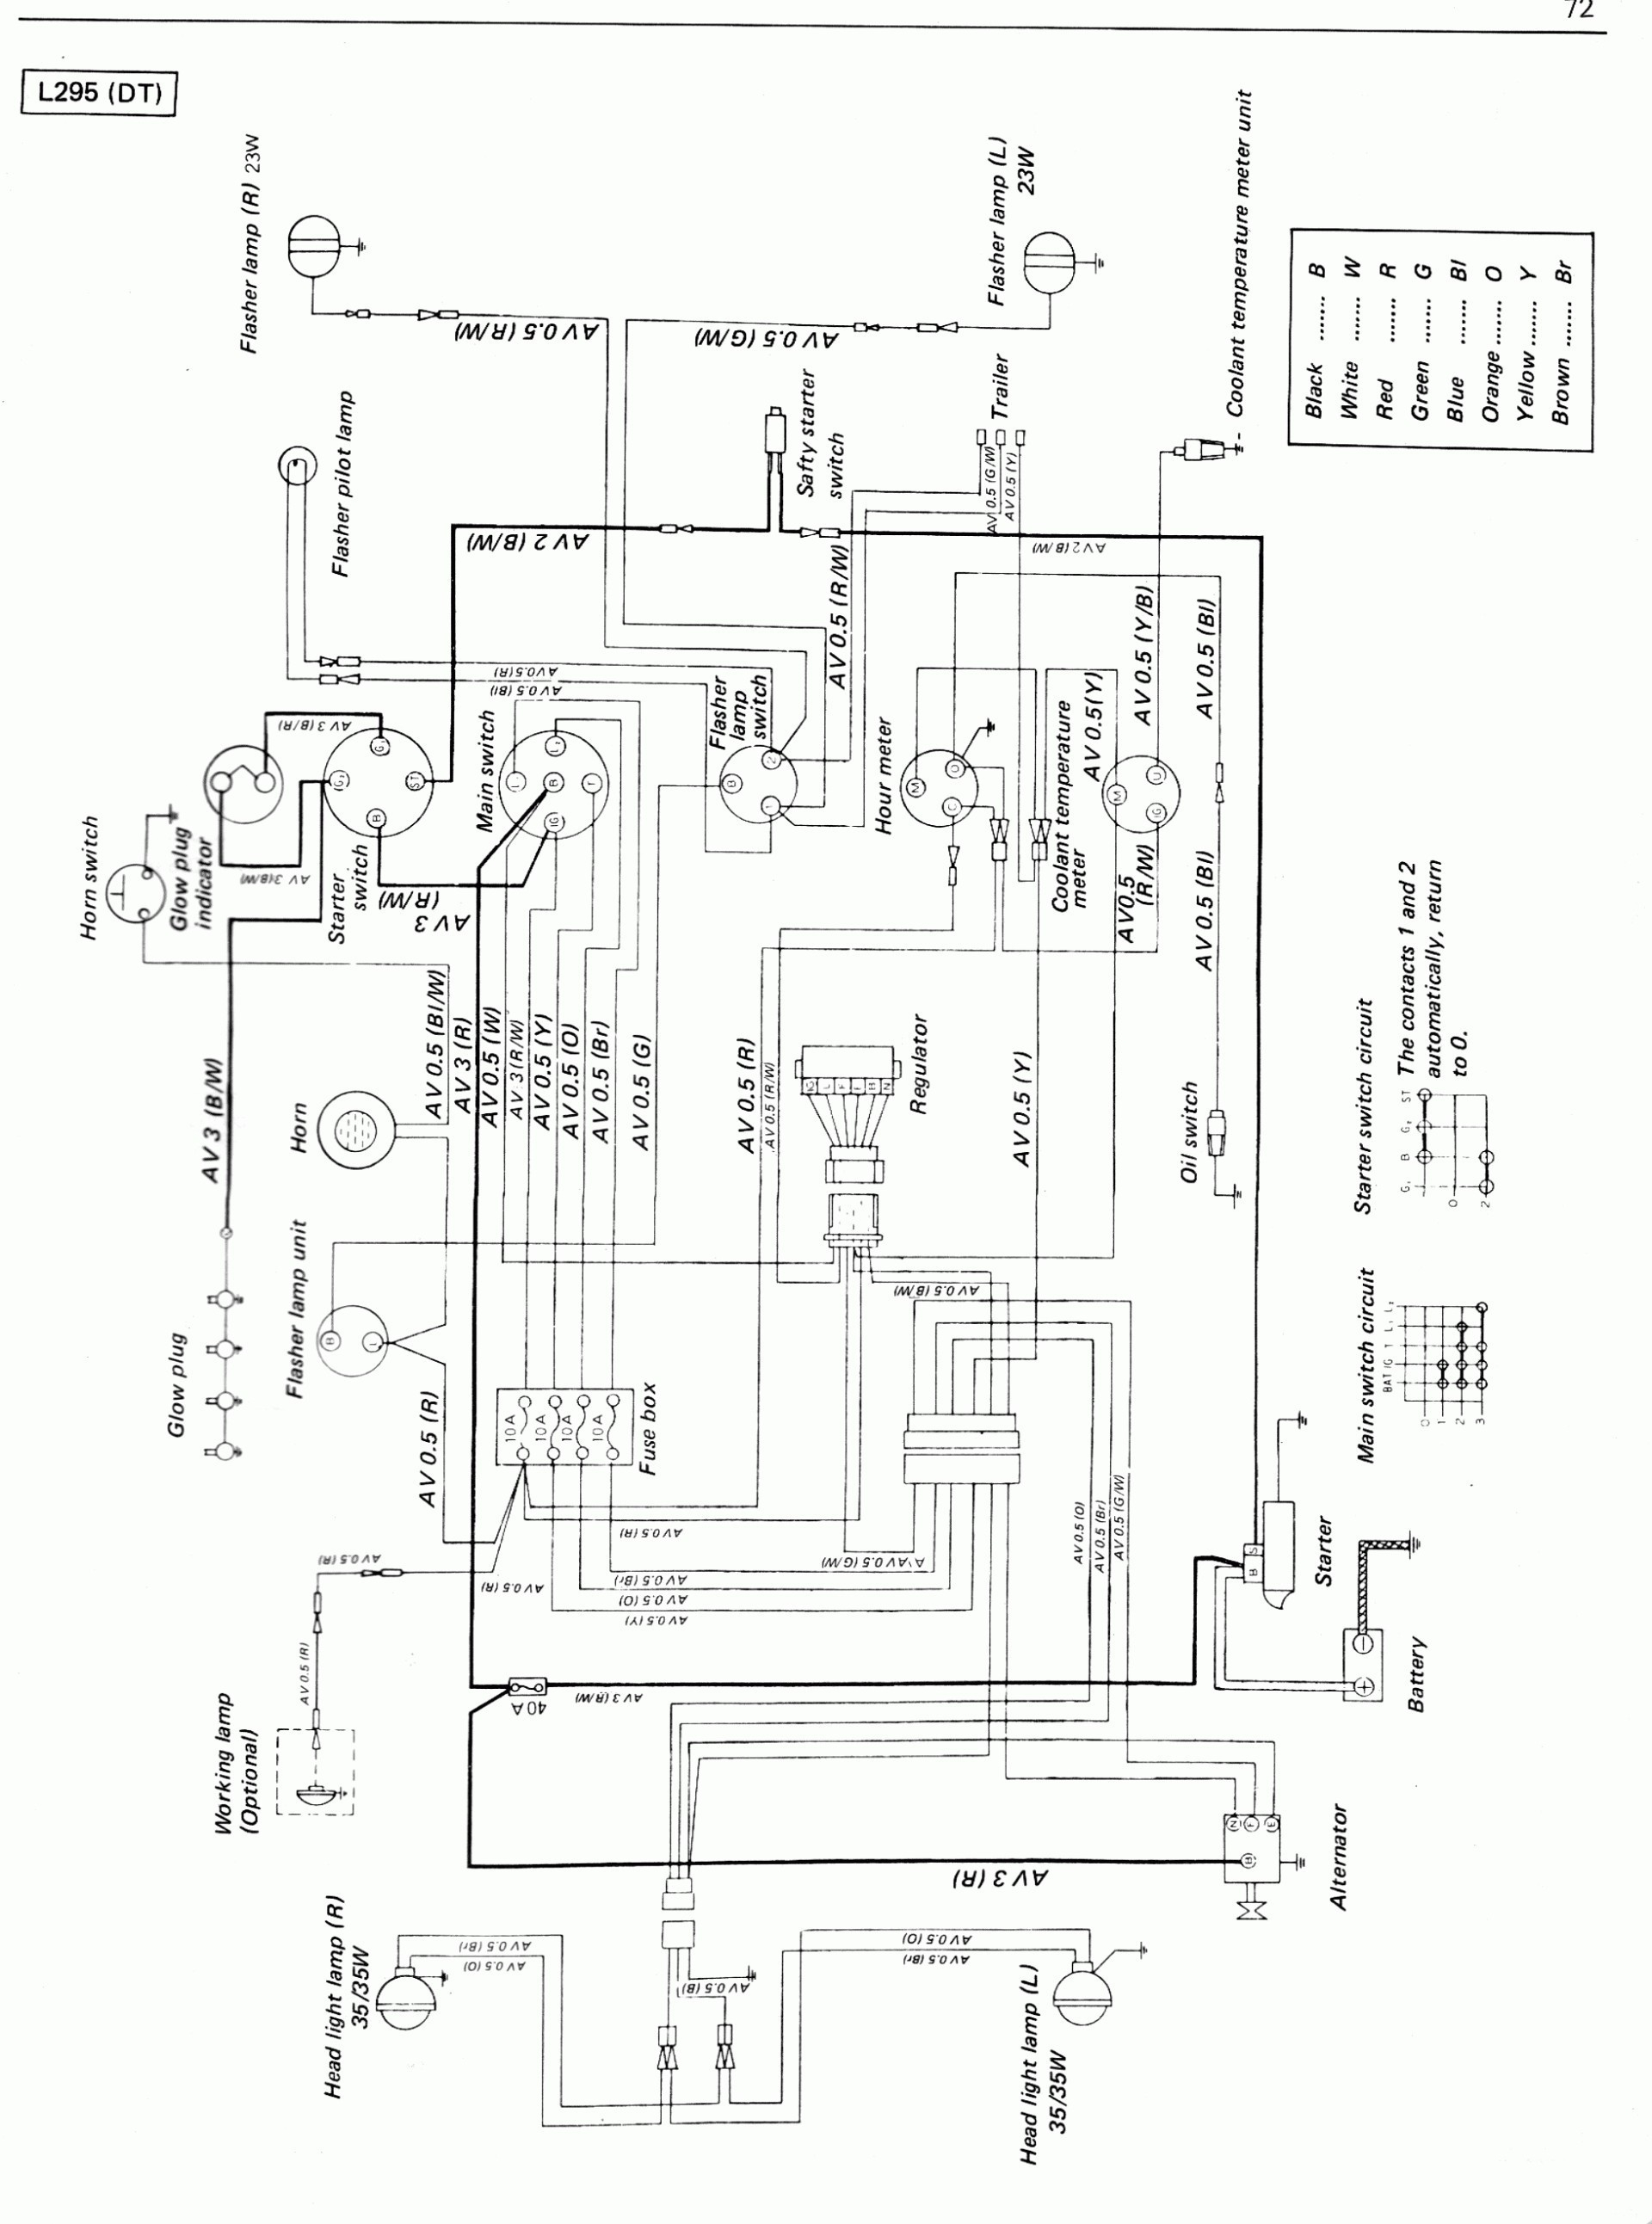 starter relay wiring diagram pdf